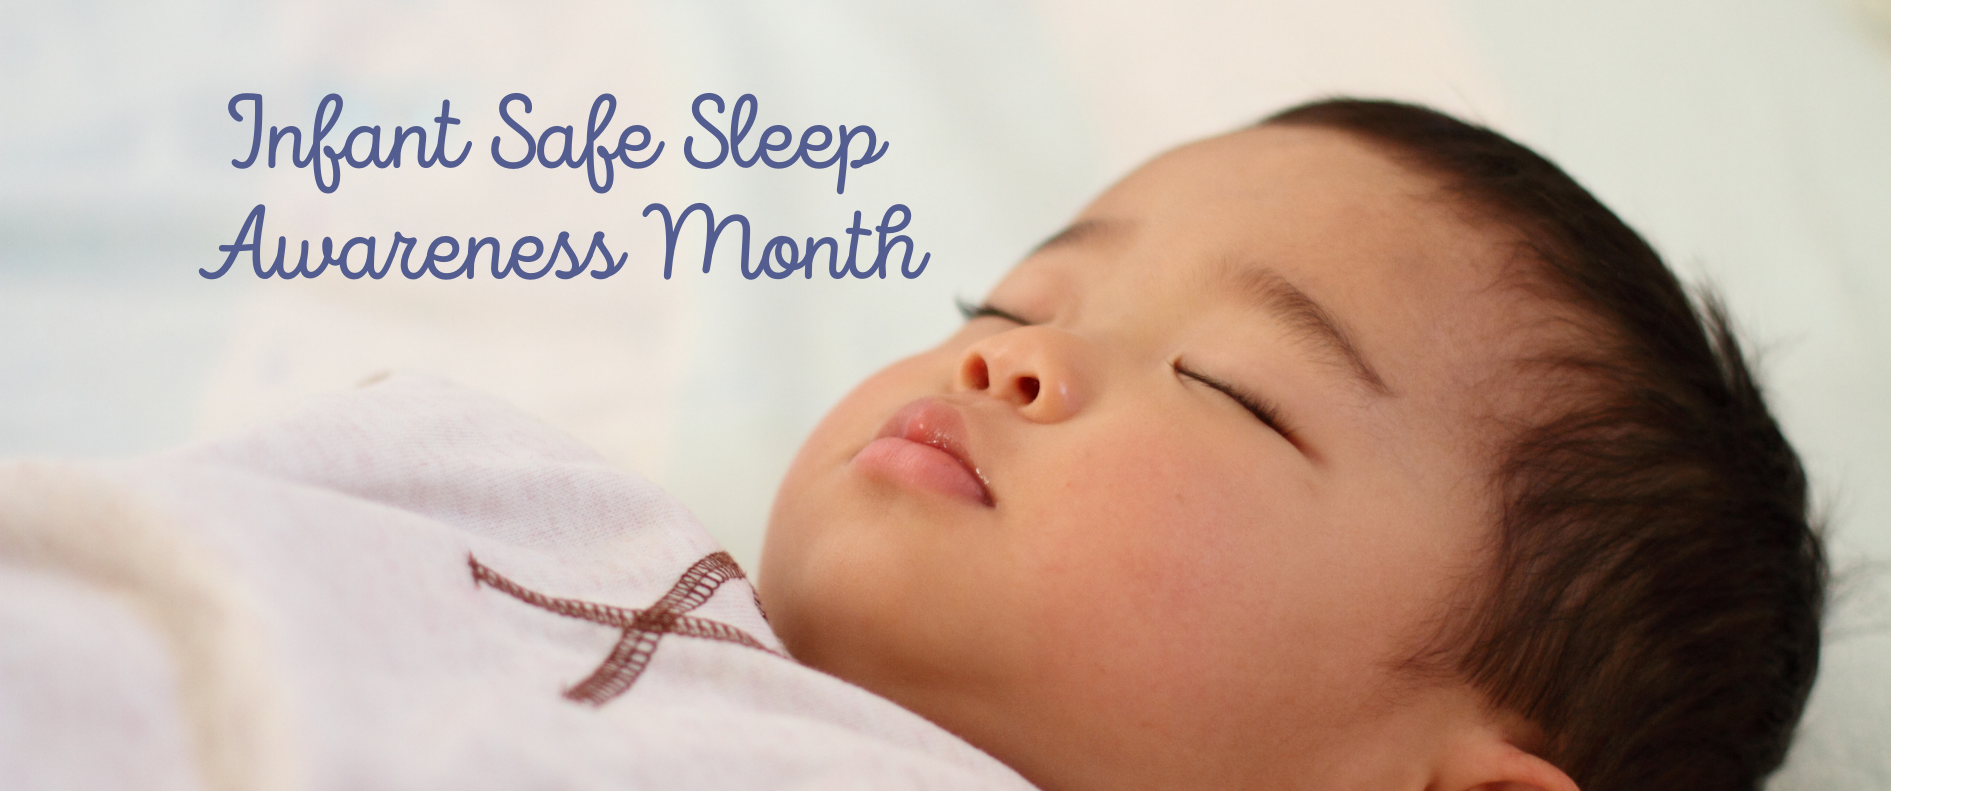 October is Infant Safe Sleep Awareness Month and to ...